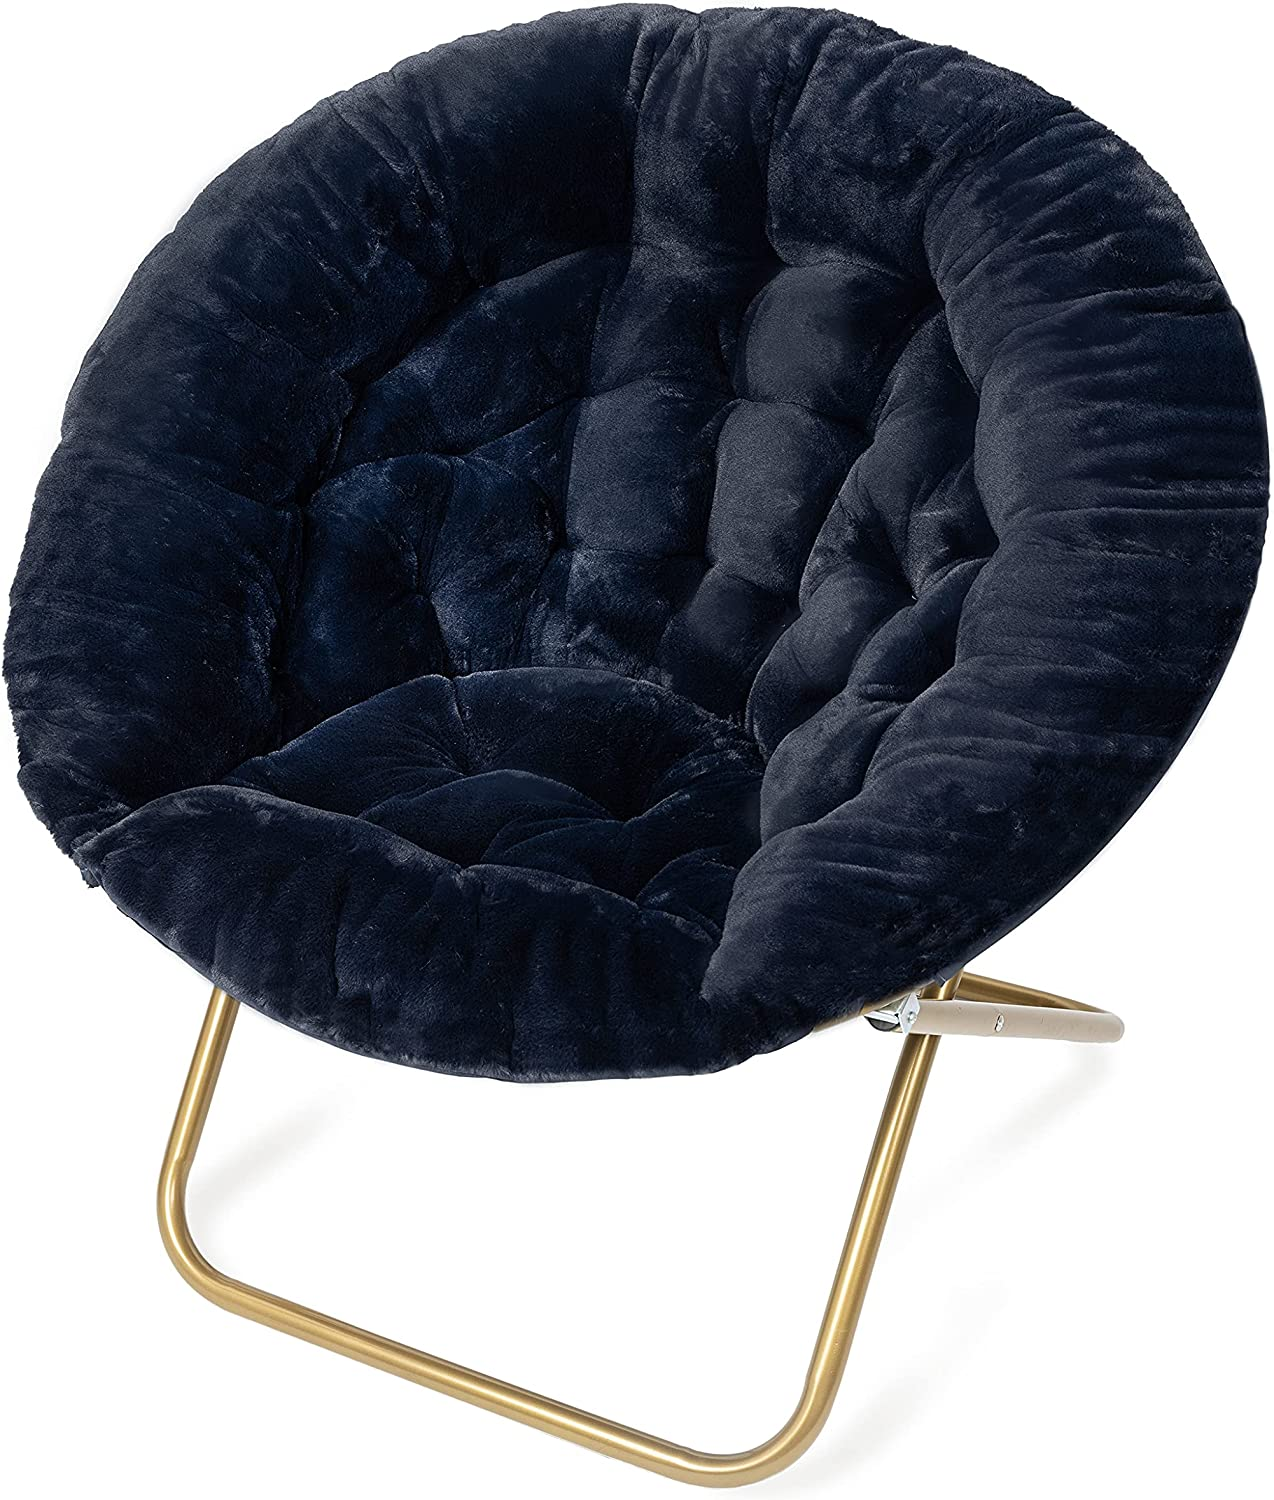 Milliard Cozy Chair/Faux Fur Saucer Chair for Bedroom/X-Large (Navy Blue)